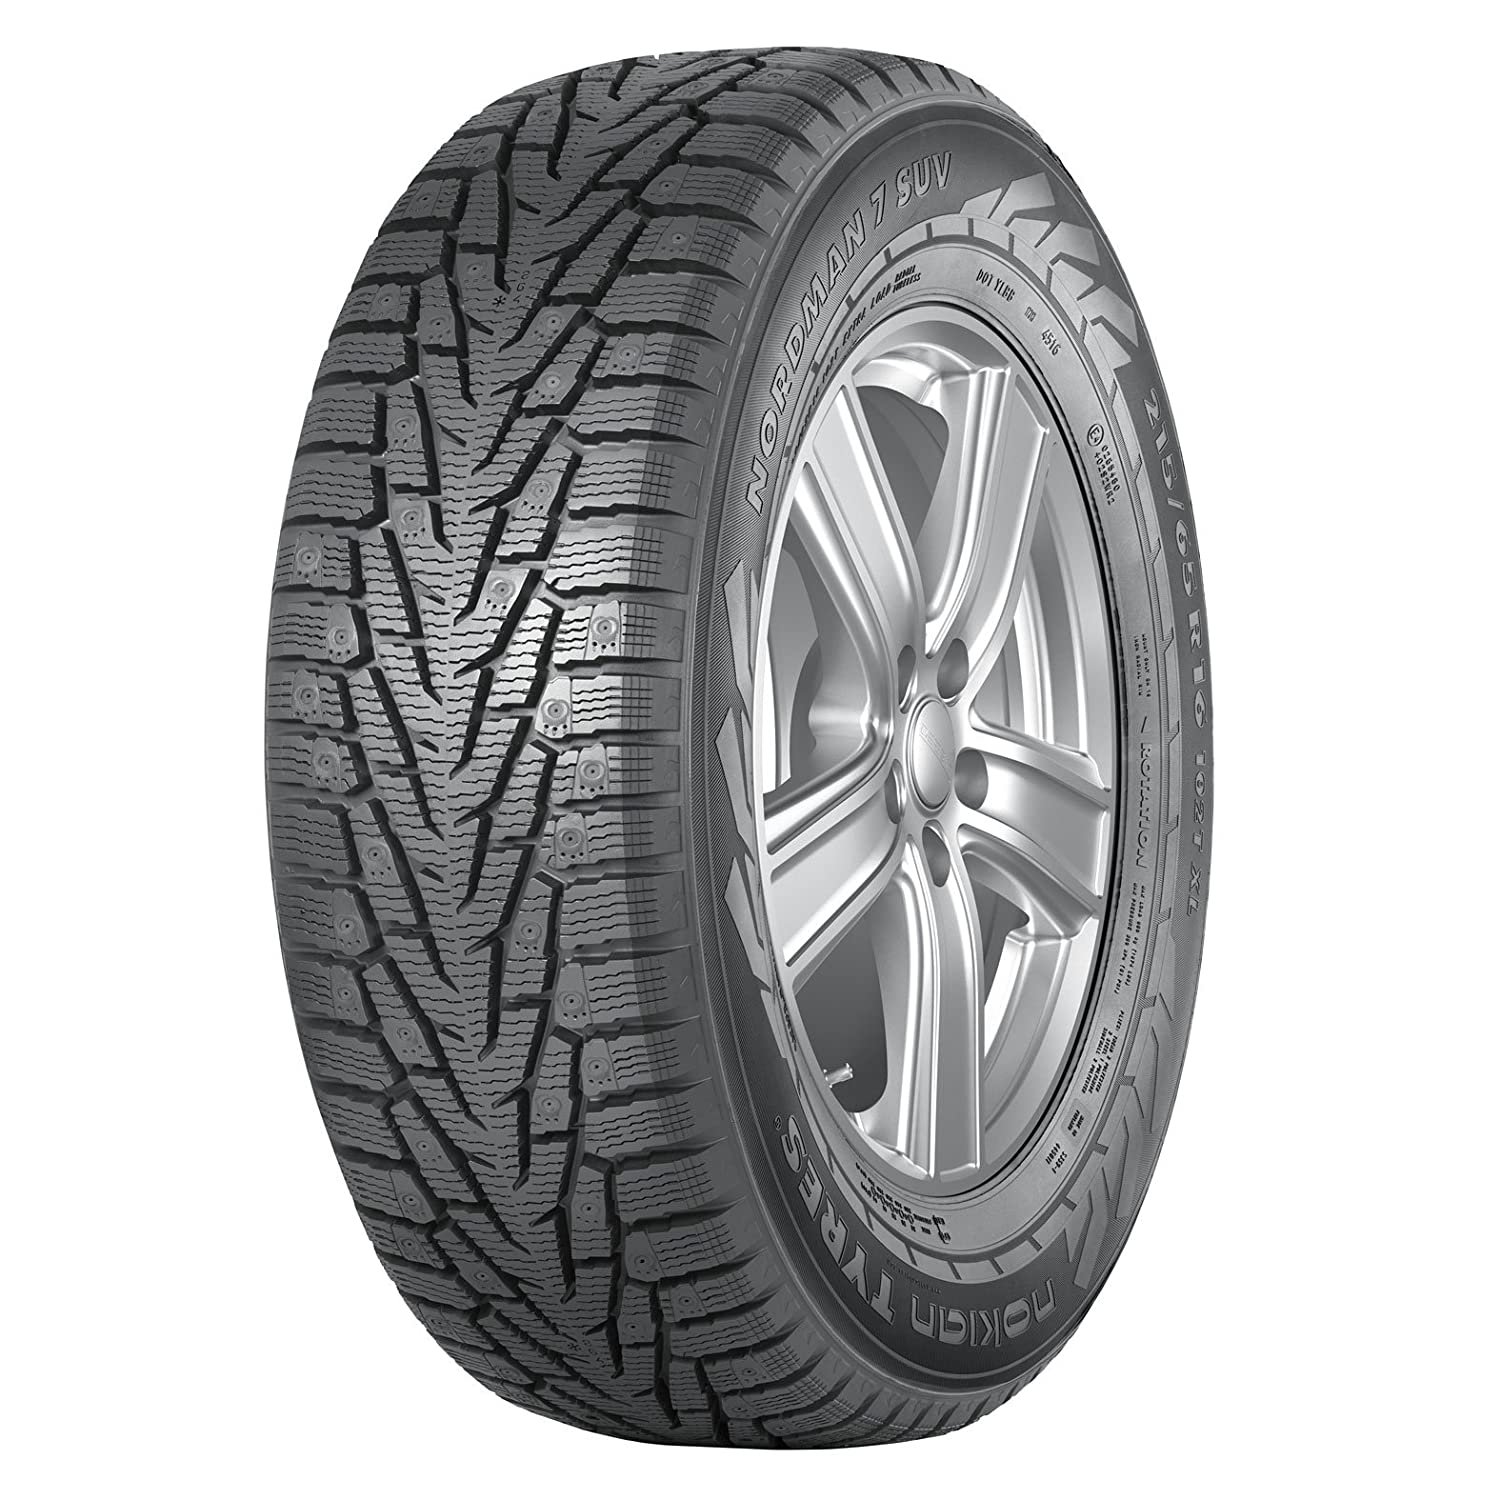 Nokian NORDMAN 7 SUV Performance-Winter Radial Tire-215/70R15 98T T430281